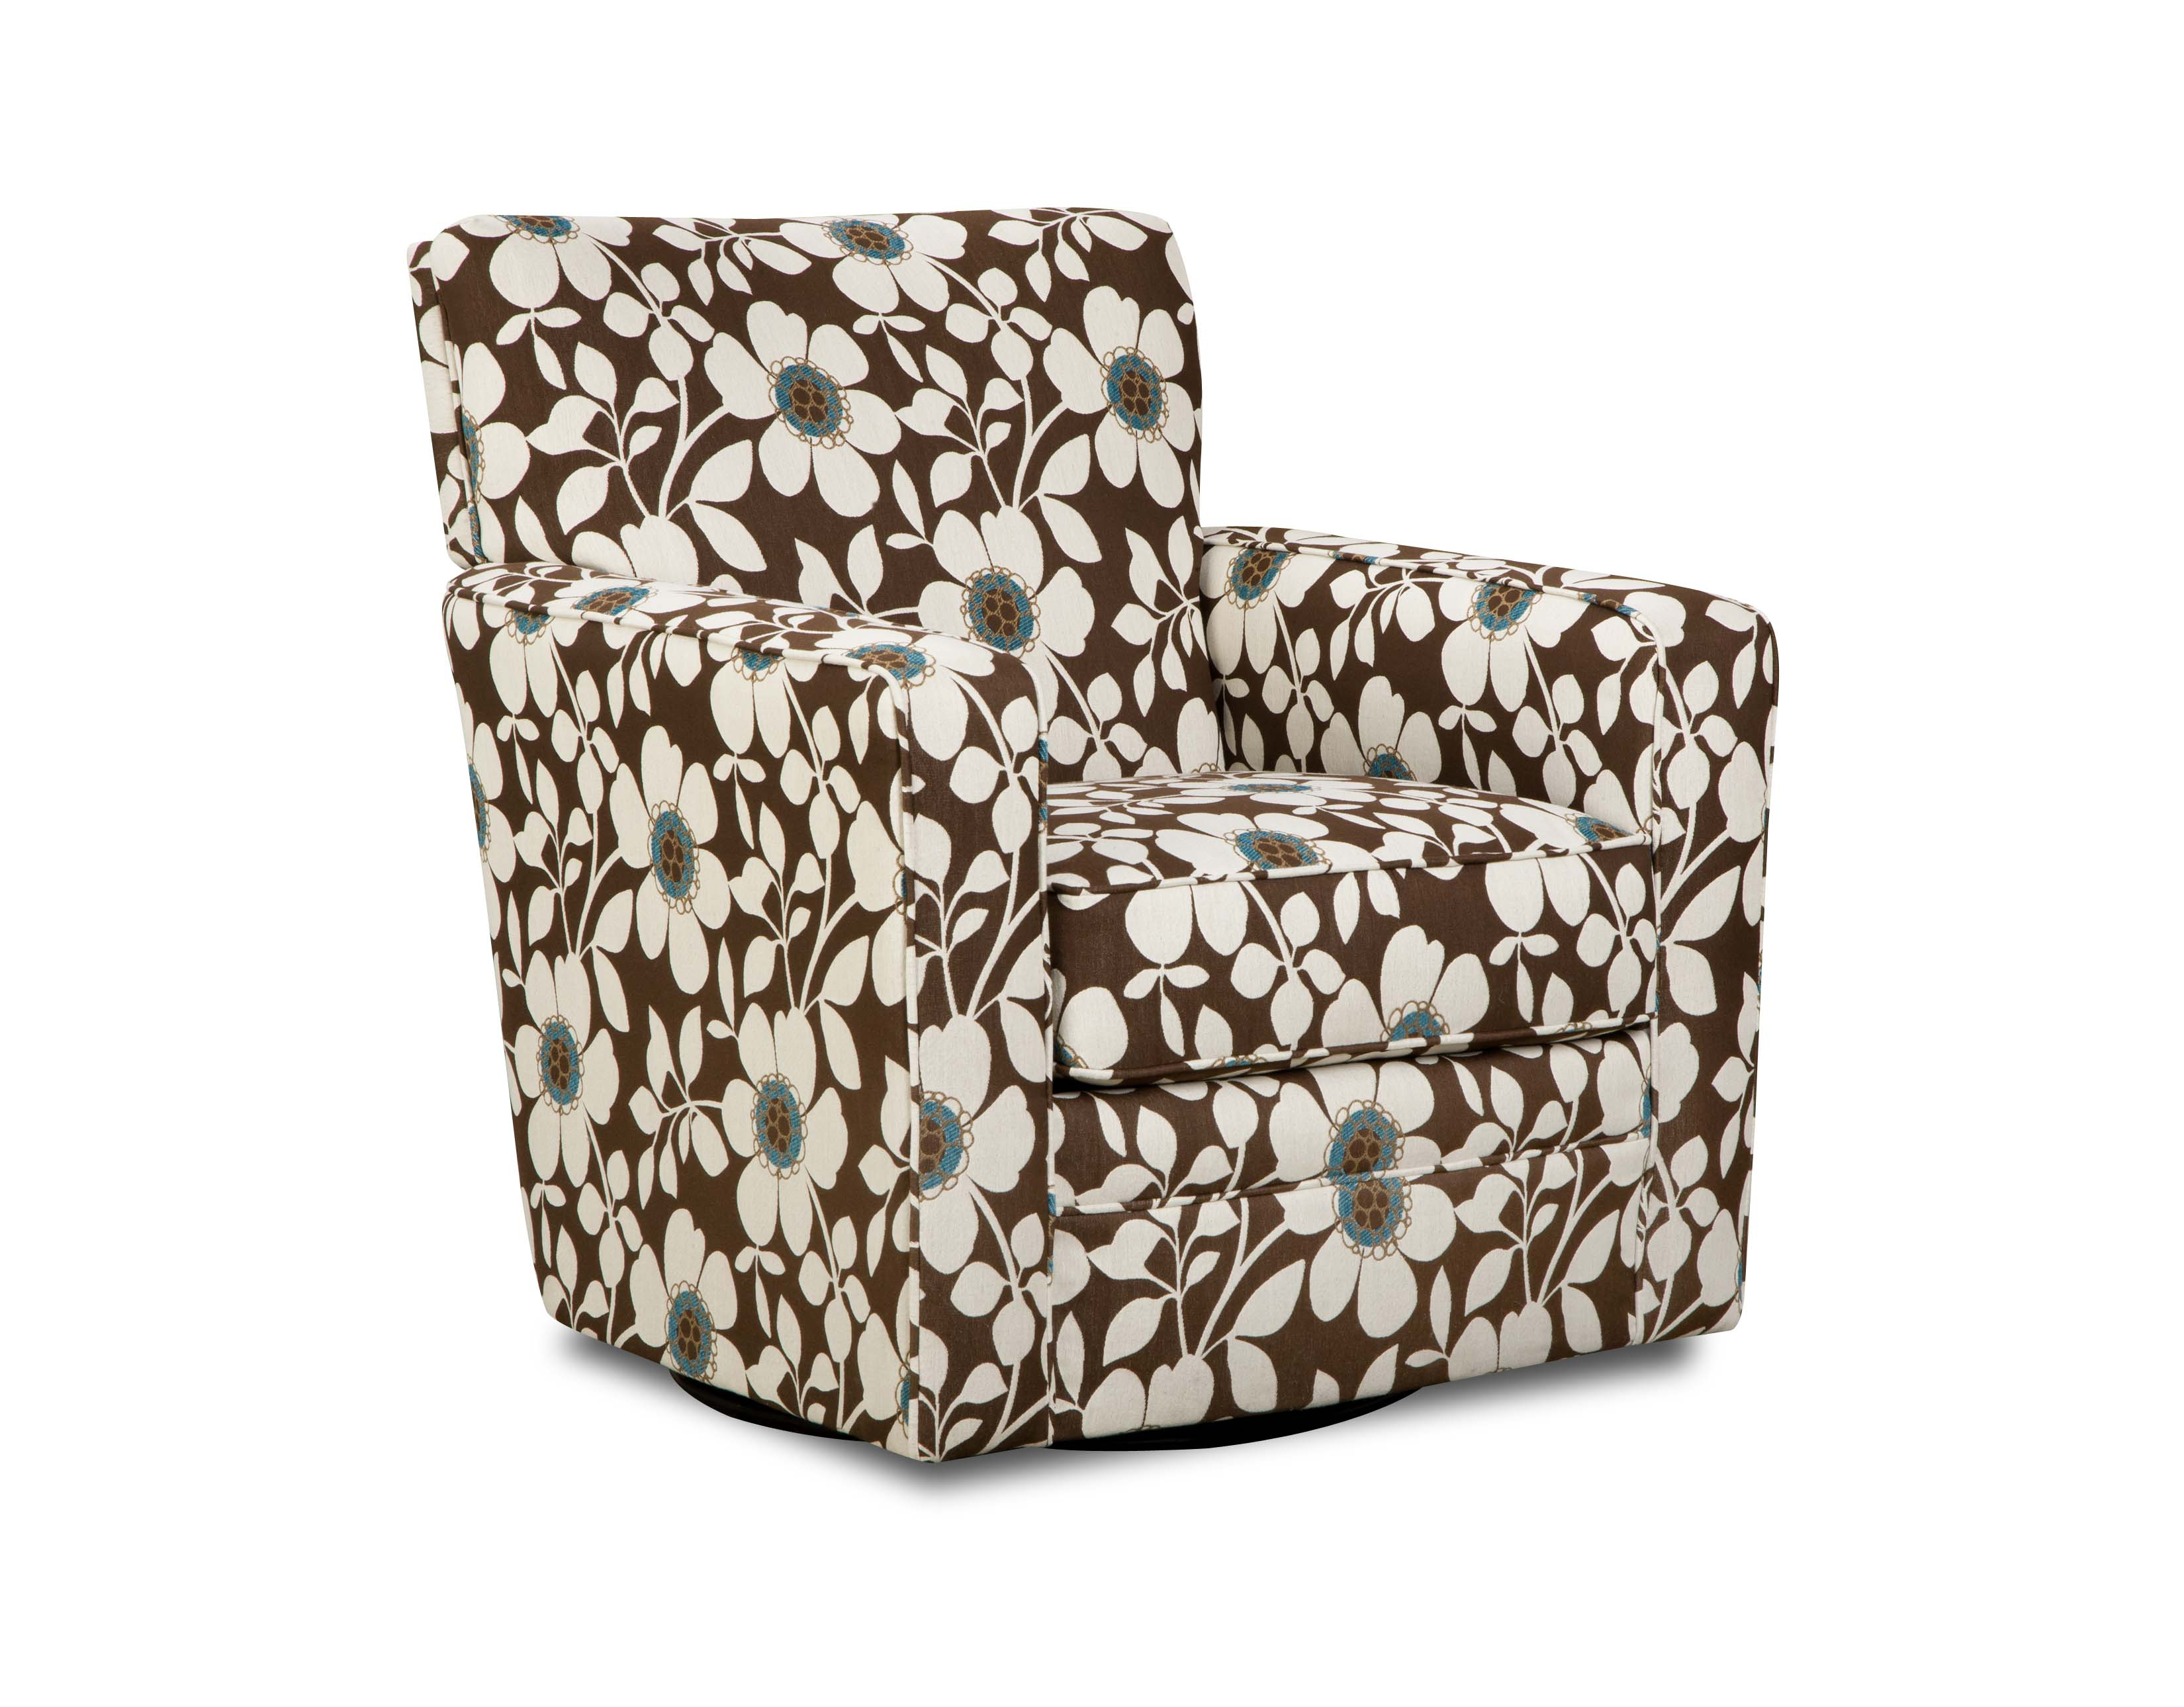 Sears Accent Chairs Simmons Brown And White Floral Chicklet Swivel Chair